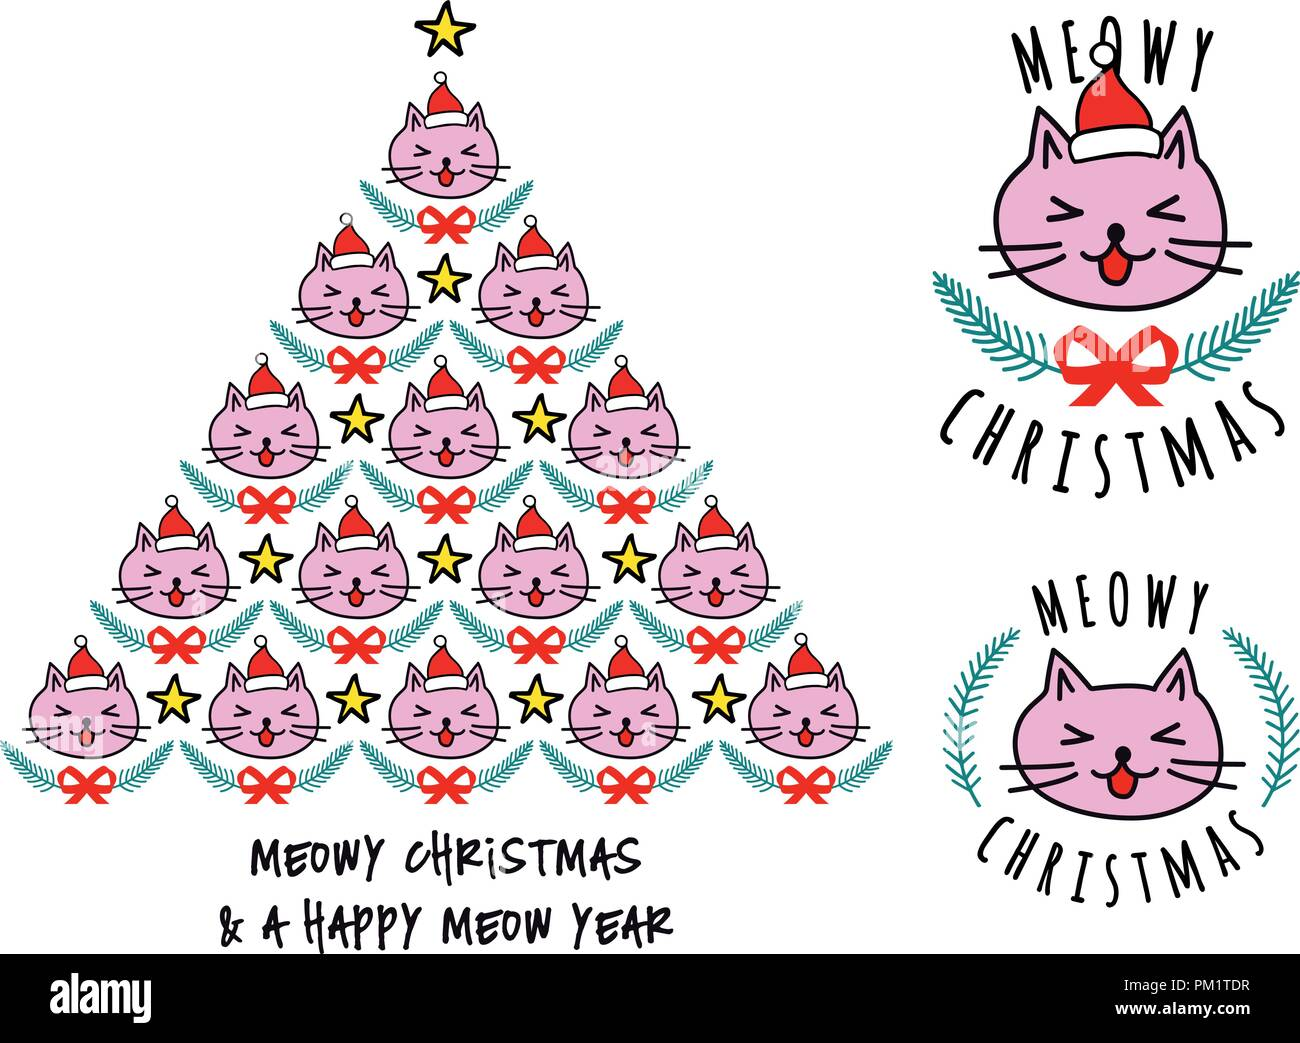 Christmas tree with cat faces, cute kawaii vector illustration for Christmas cards - Stock Image